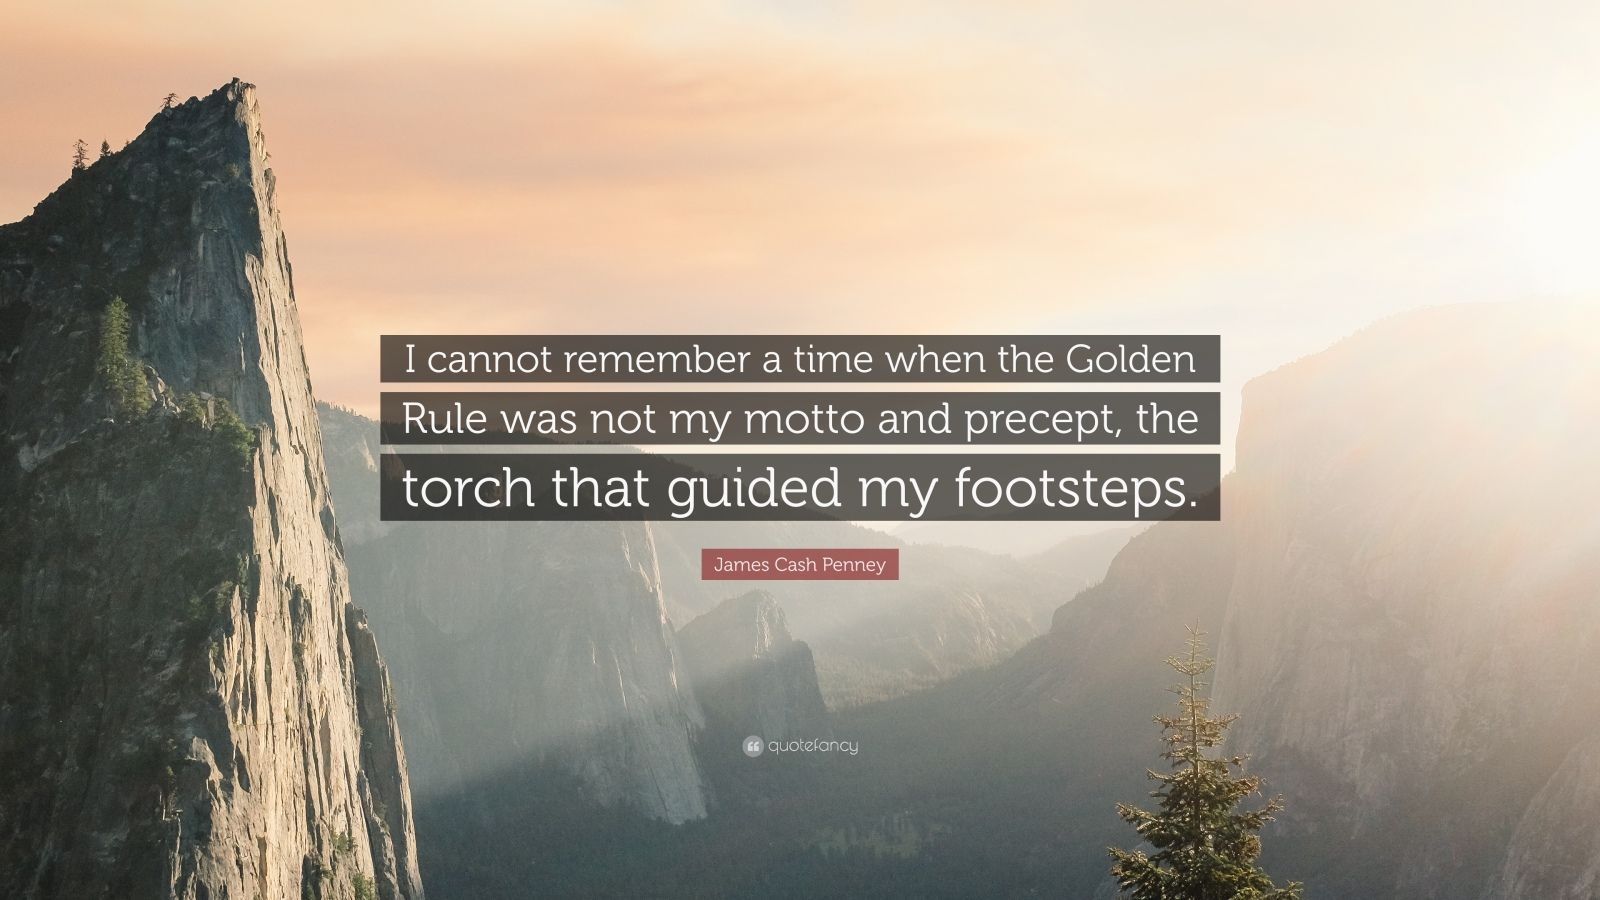 """James Cash Penney Quote: """"I cannot remember a time when the Golden Rule was not my motto and precept, the torch that guided my footsteps."""""""